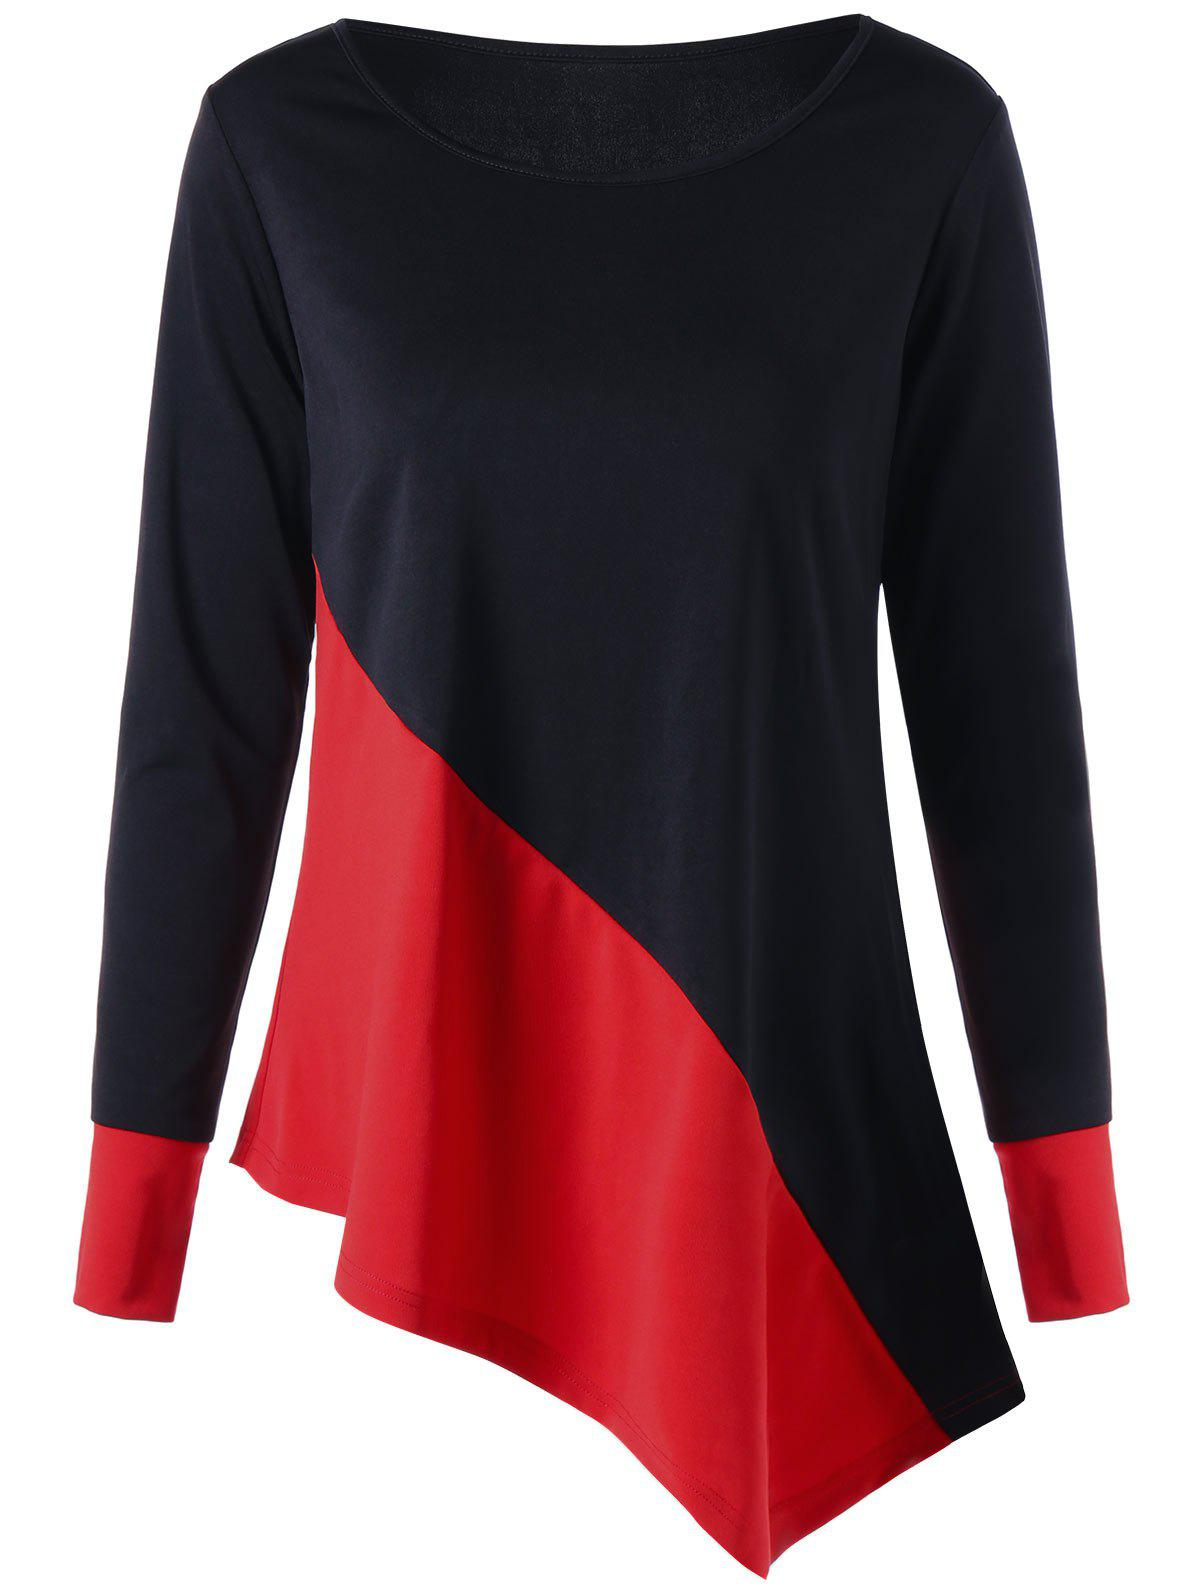 Color Block Long Sleeve Asymmetric TopWOMEN<br><br>Size: M; Color: RED WITH BLACK; Material: Polyester,Spandex; Shirt Length: Regular; Sleeve Length: Full; Collar: Scoop Neck; Style: Casual; Pattern Type: Others; Season: Fall,Spring; Weight: 0.2830kg; Package Contents: 1 x Top;